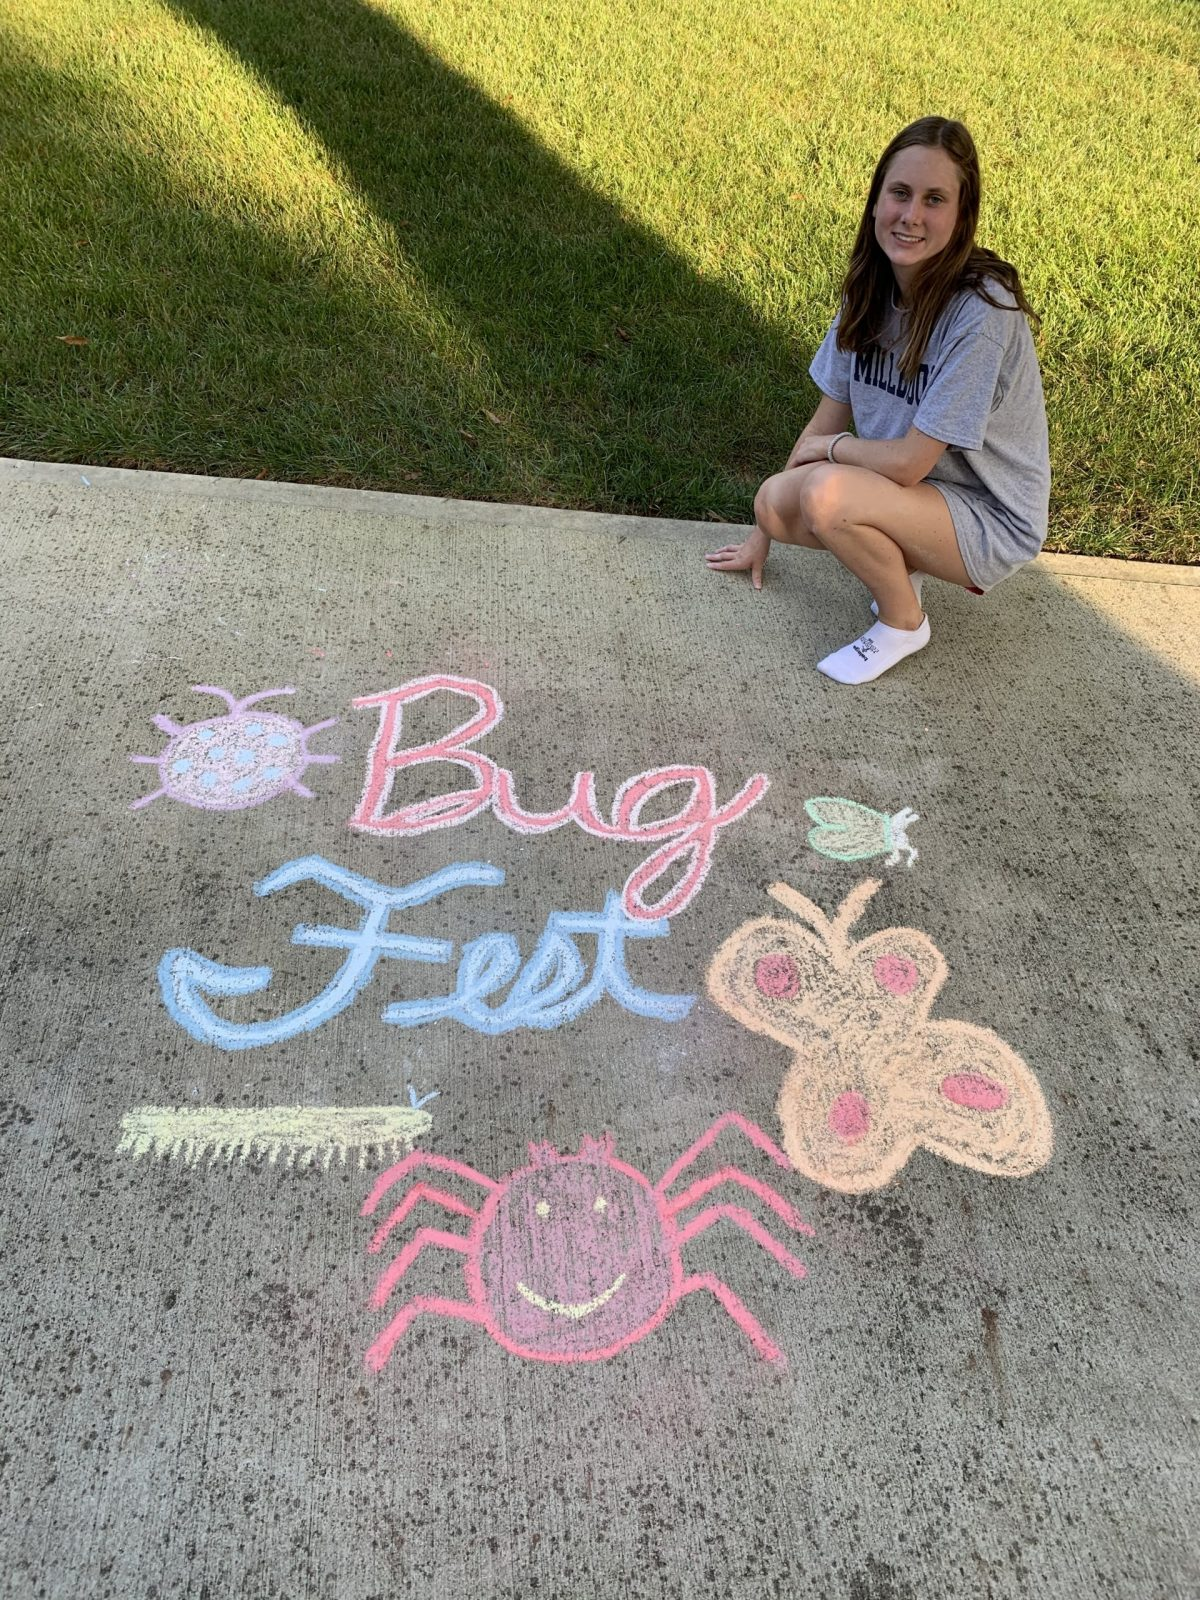 a young woman by a cursive bugfest and an assortment of chalk bugs